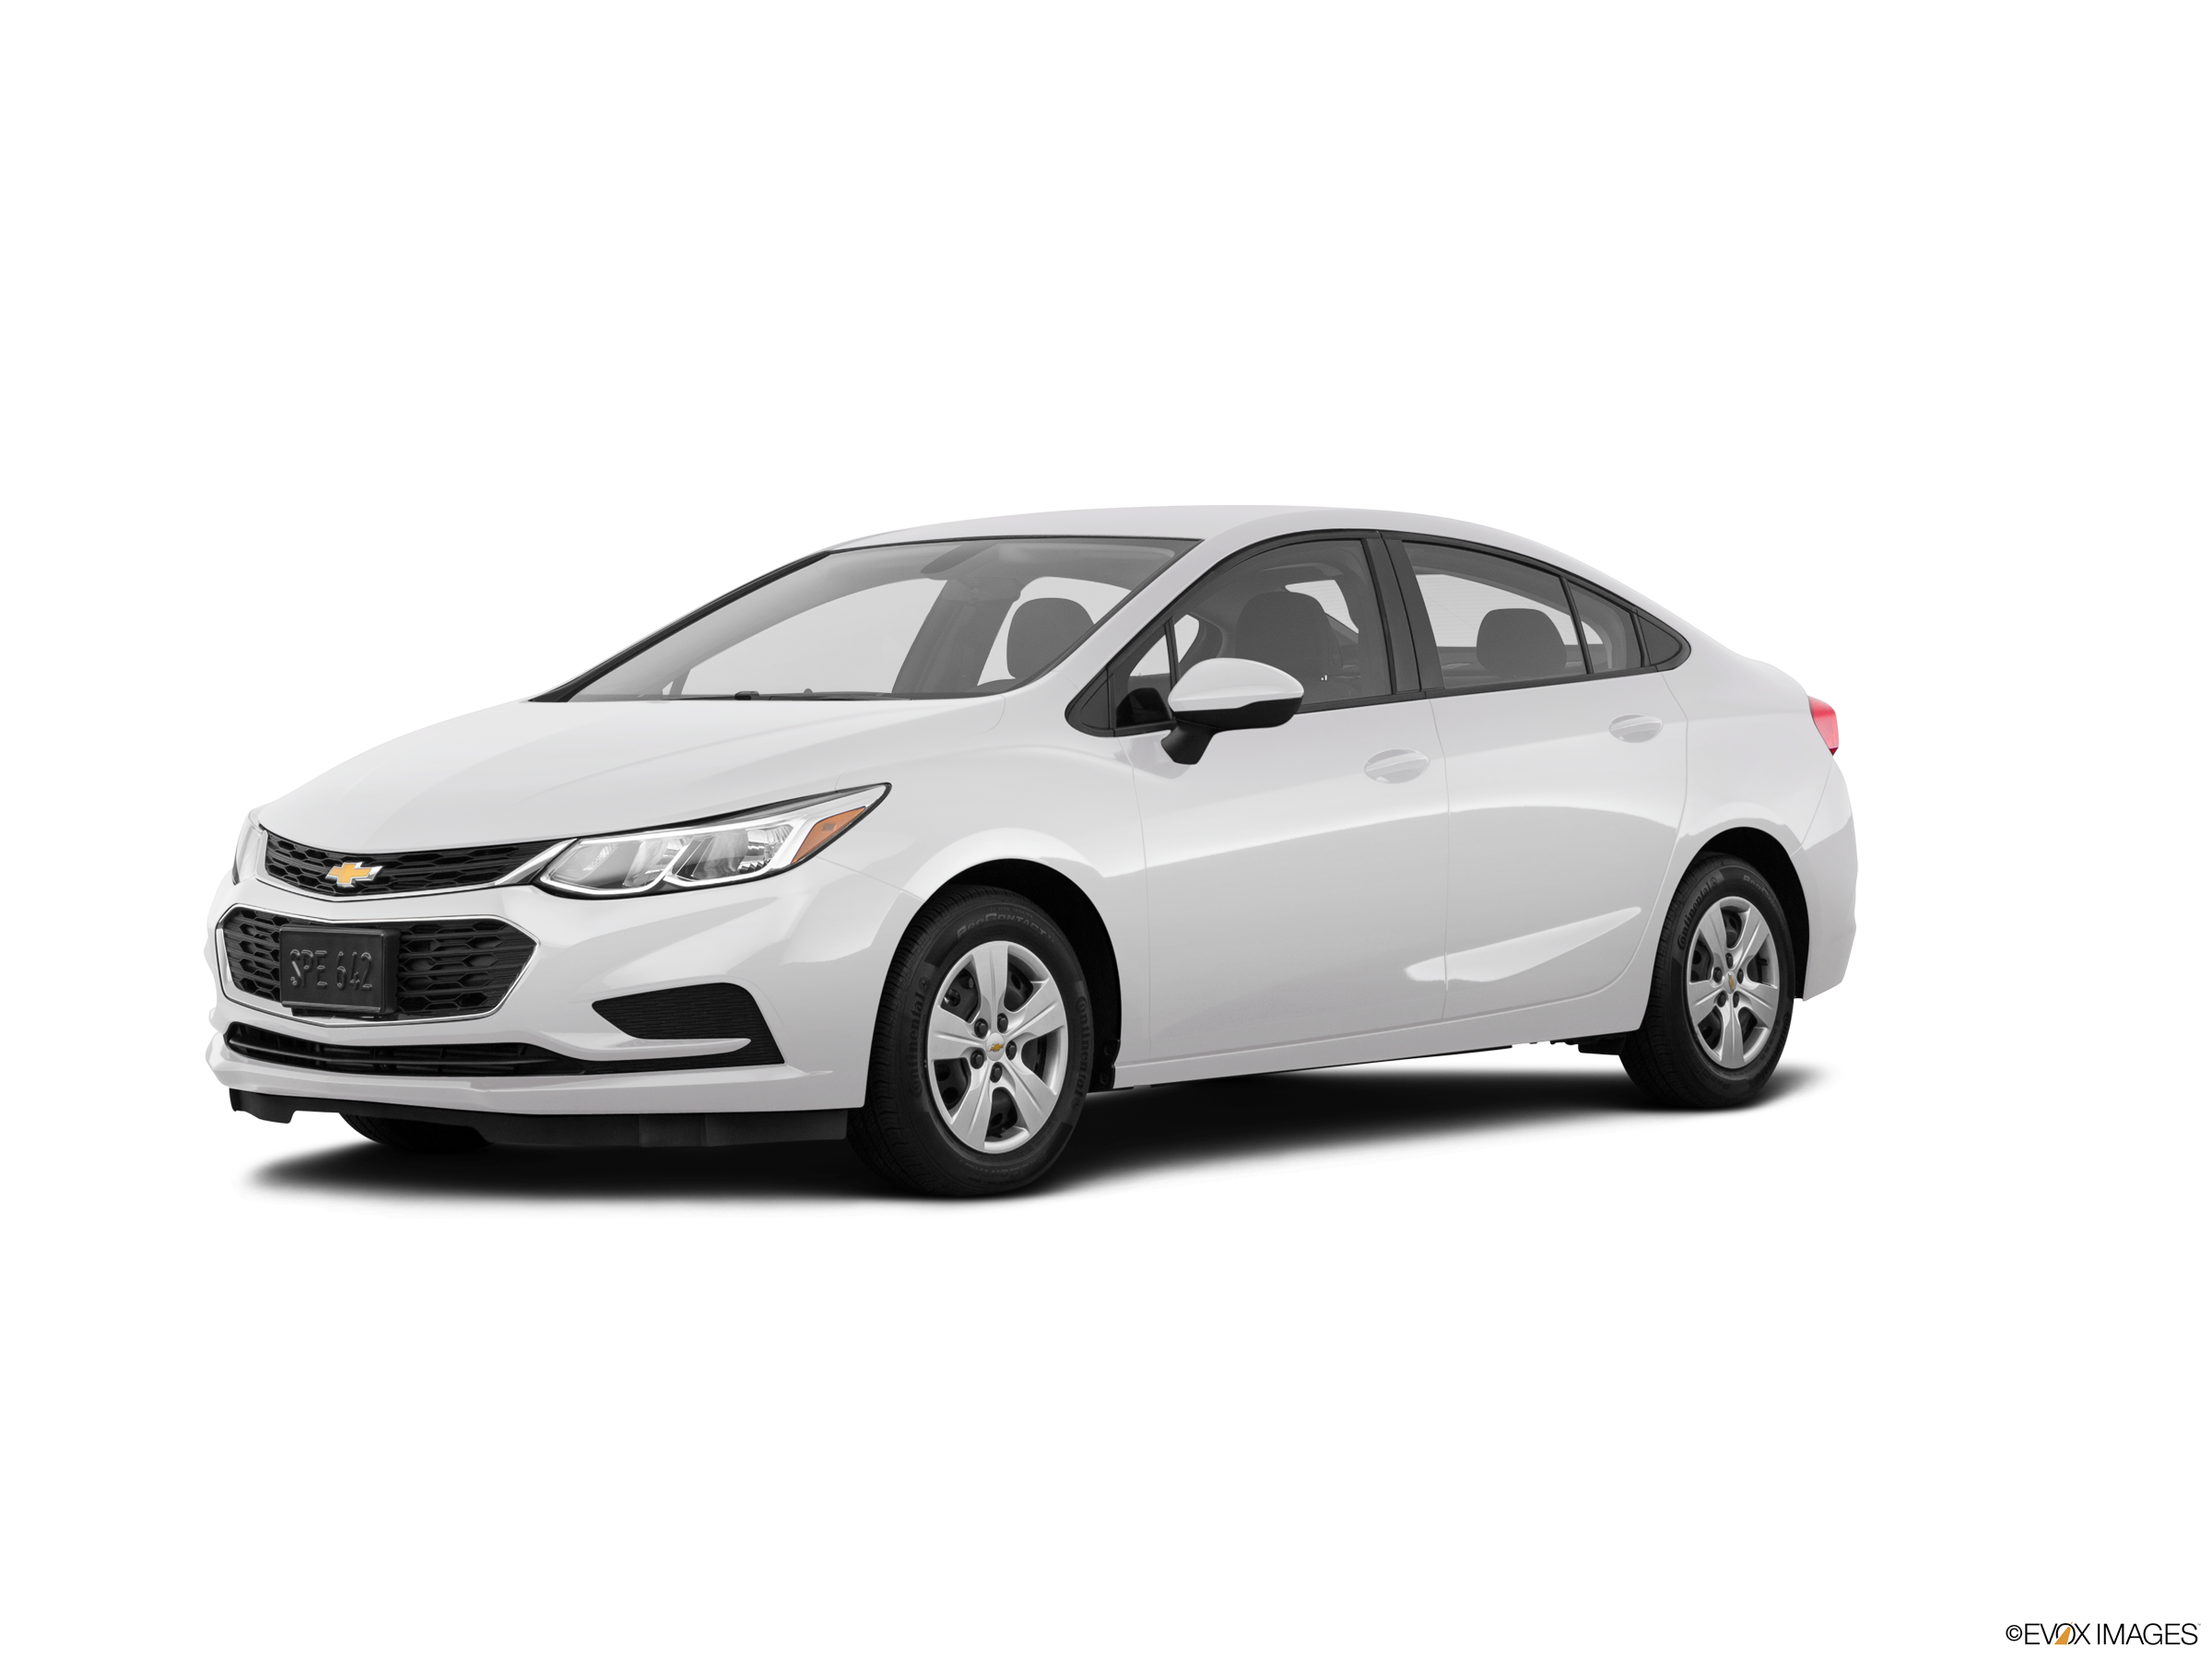 Top Expert Rated Sedans of 2019 - 2019 Chevrolet Cruze